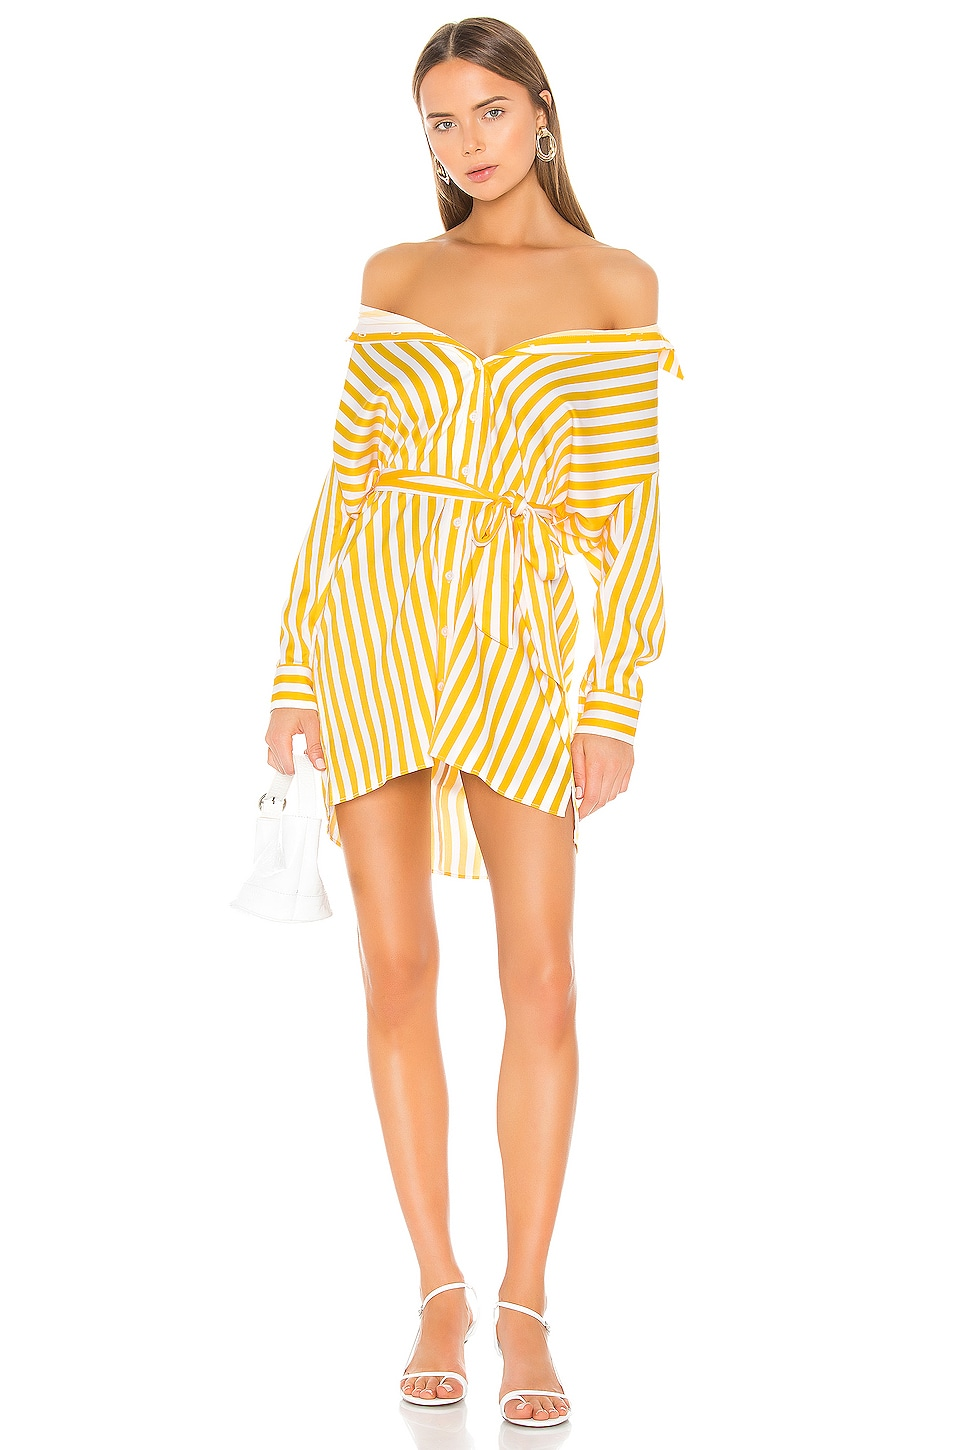 Michael Costello x REVOLVE Robbie Shirt Dress in Yellow Stripe